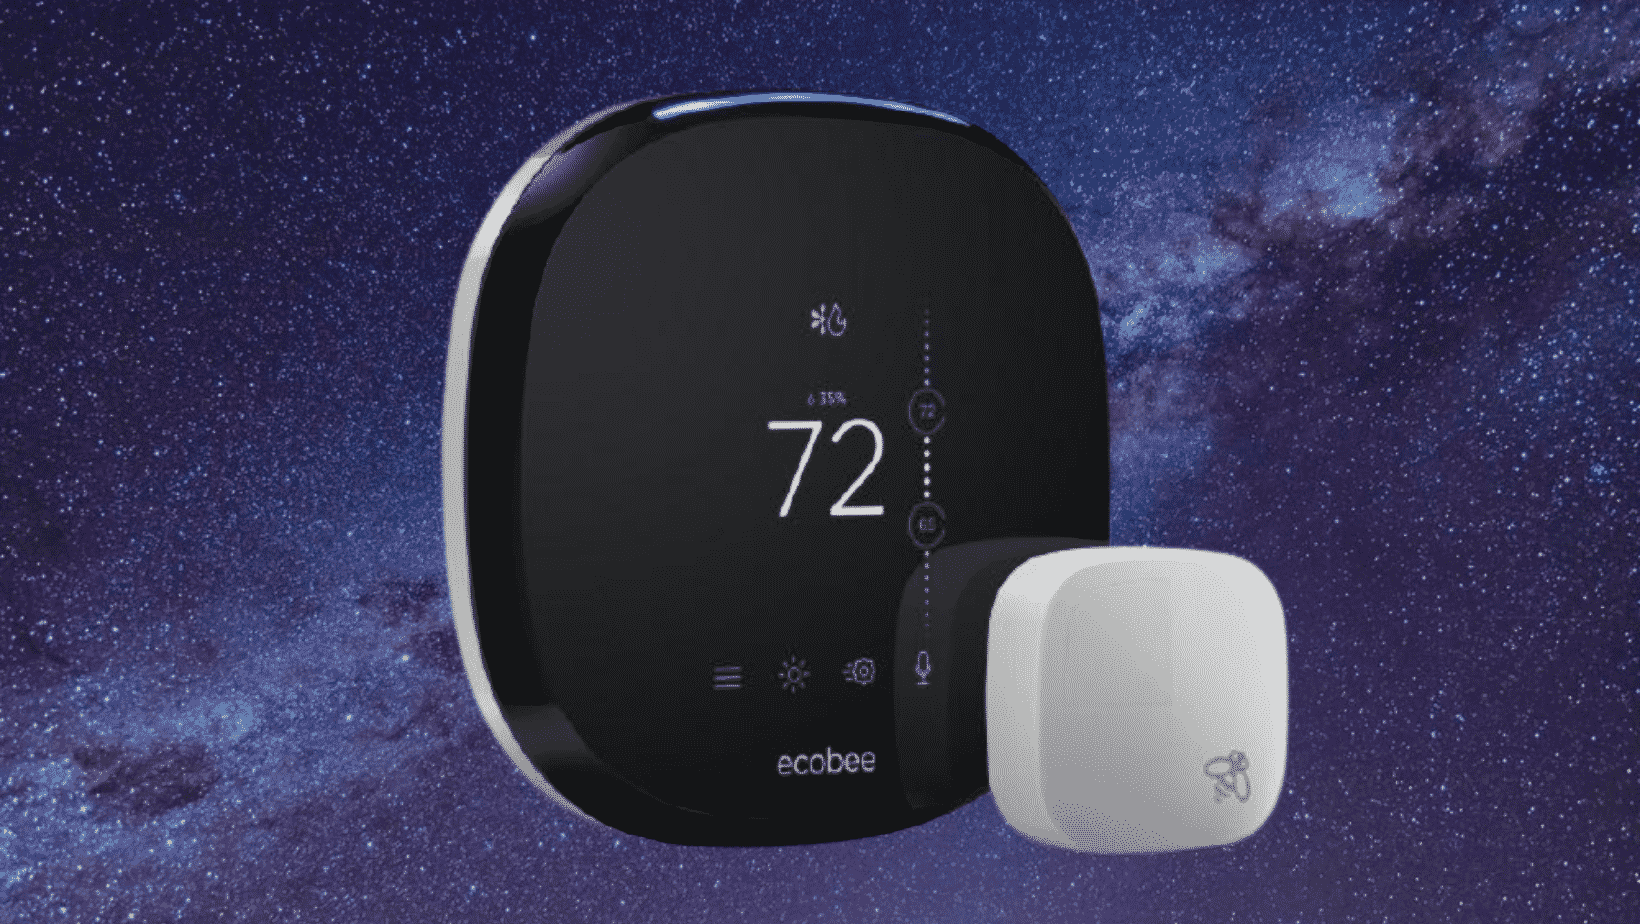 7 Best Smart Thermostat To Buy in 2021